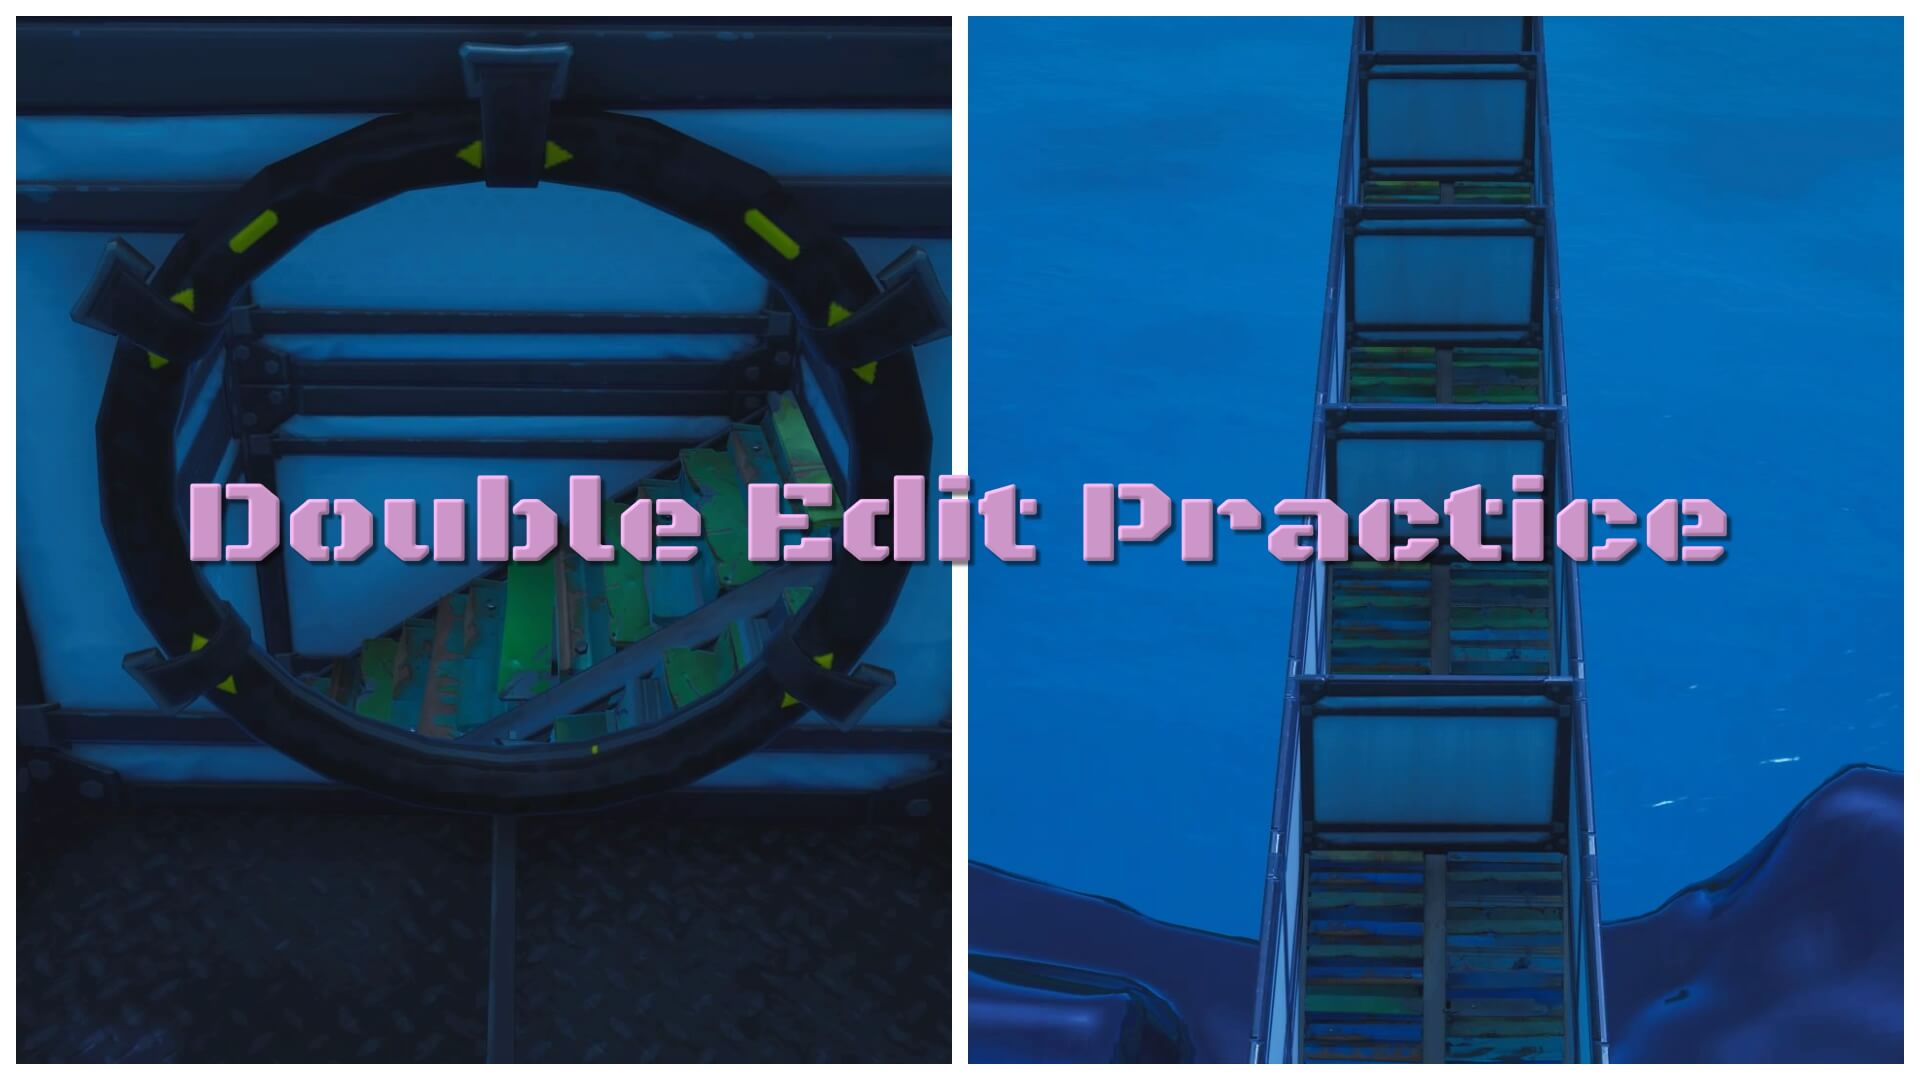 DOUBLE EDIT PRACTICE | A-KLOEG